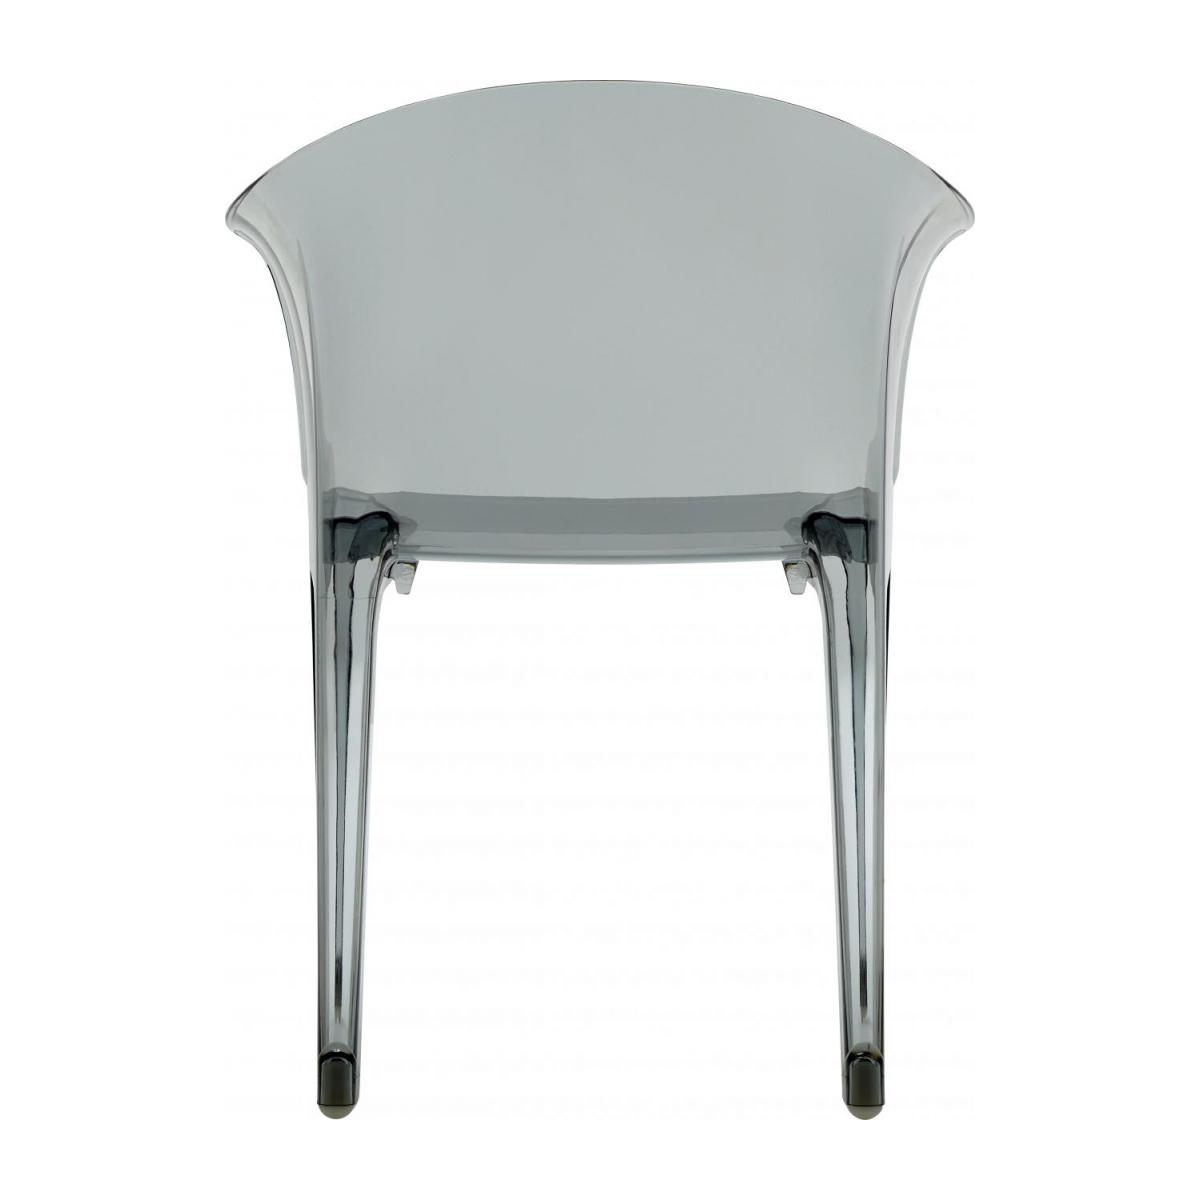 Smokey grey armchair in polycarbonate n°4